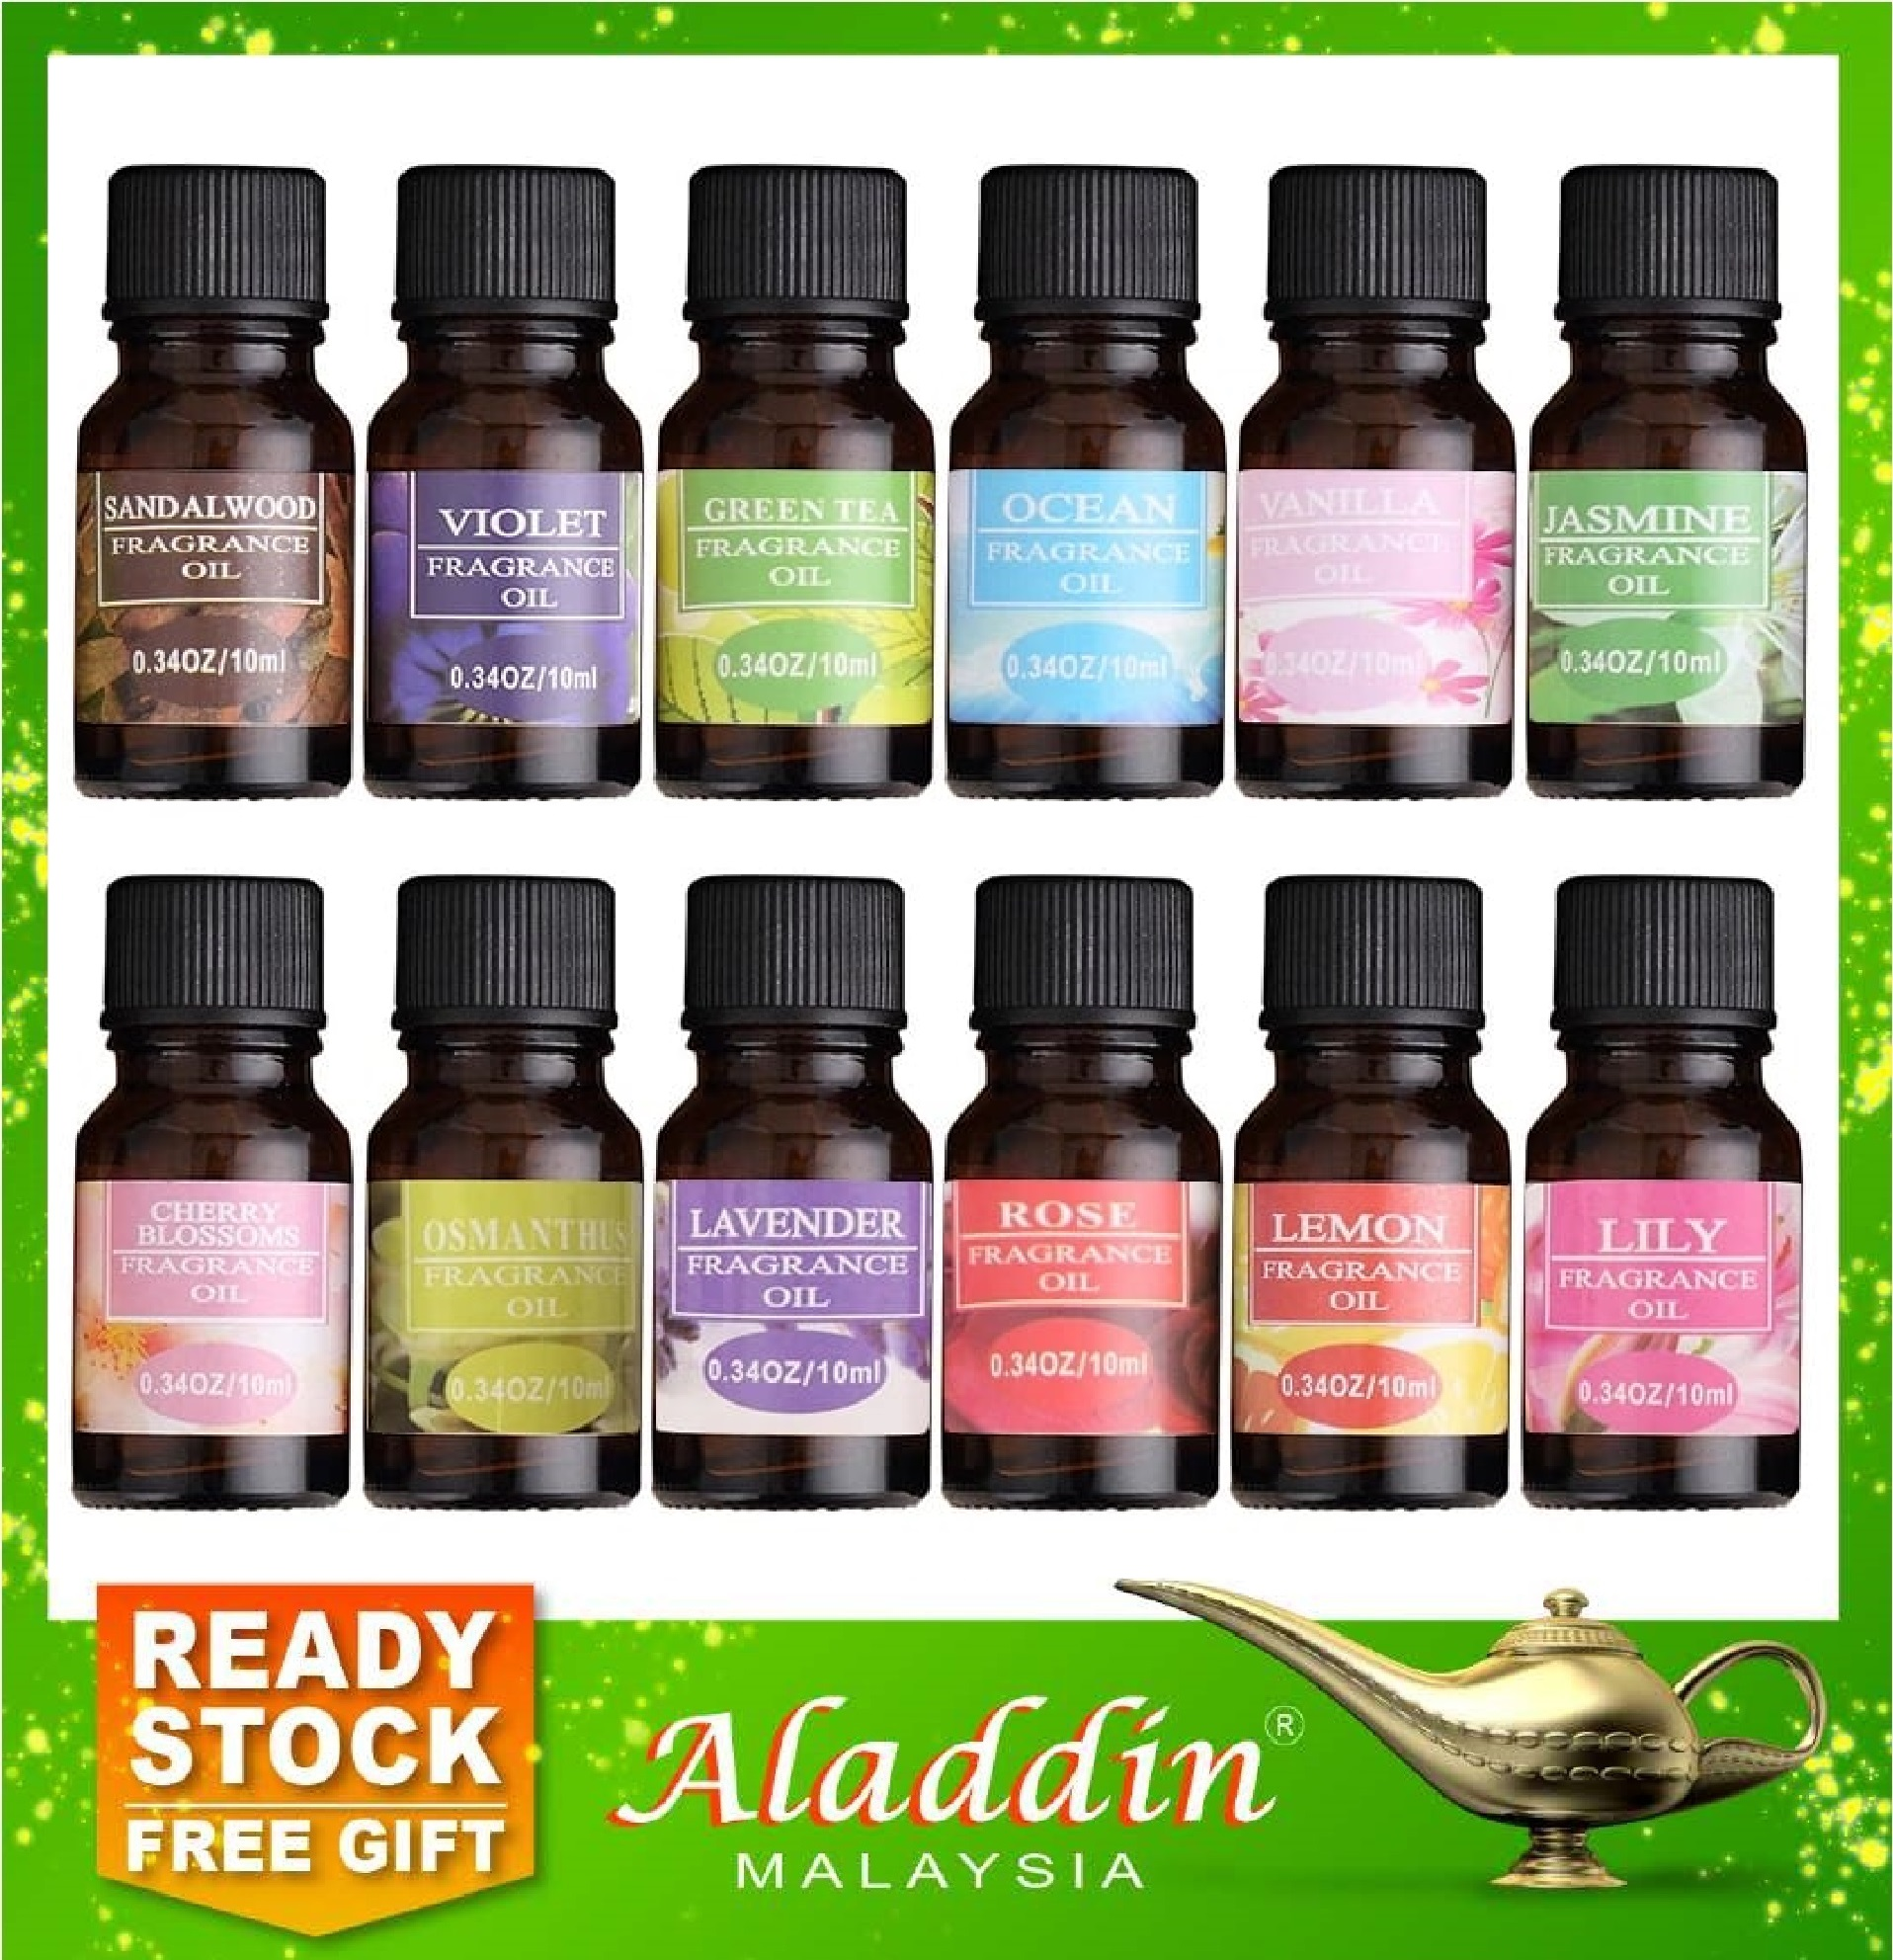 Aladdin 12 Natural Plant 10ml Aromatherapy Fragrance Essential Oil Air Diffuser Humidifier 12g4 Shopee Malaysia